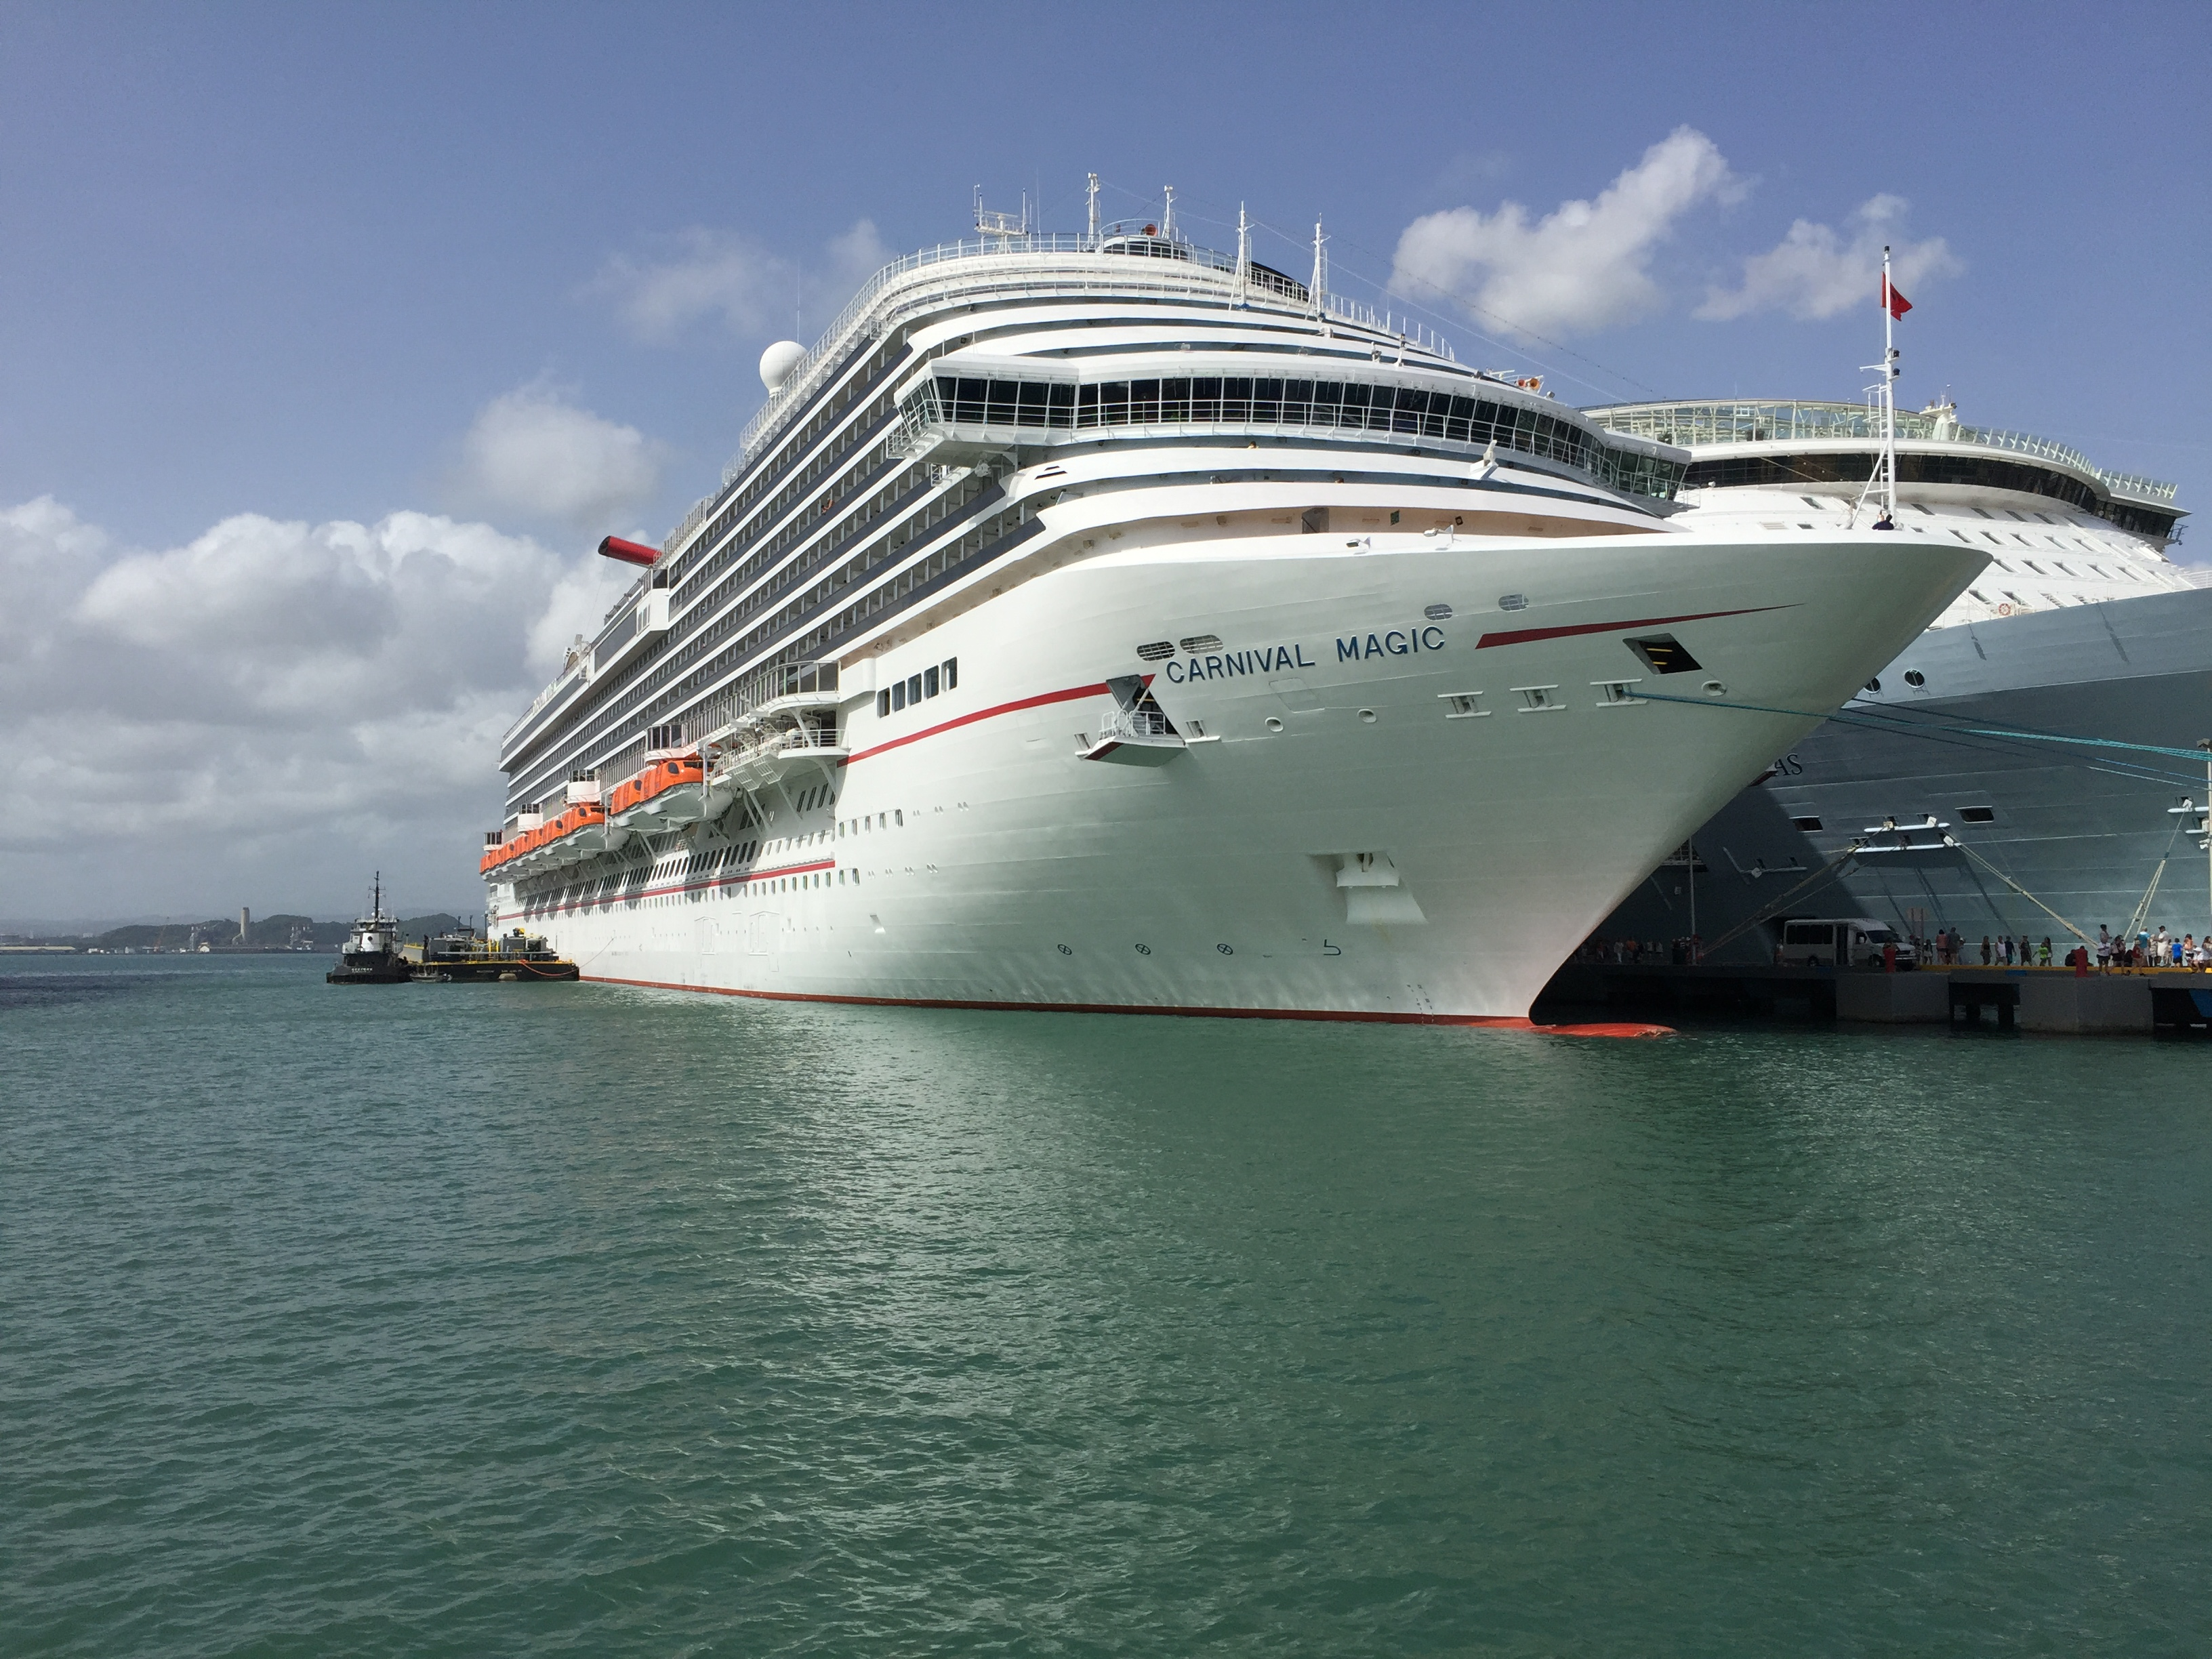 Family Cruise How To Make It Work Really Are You Serious - How much do cruise ships make